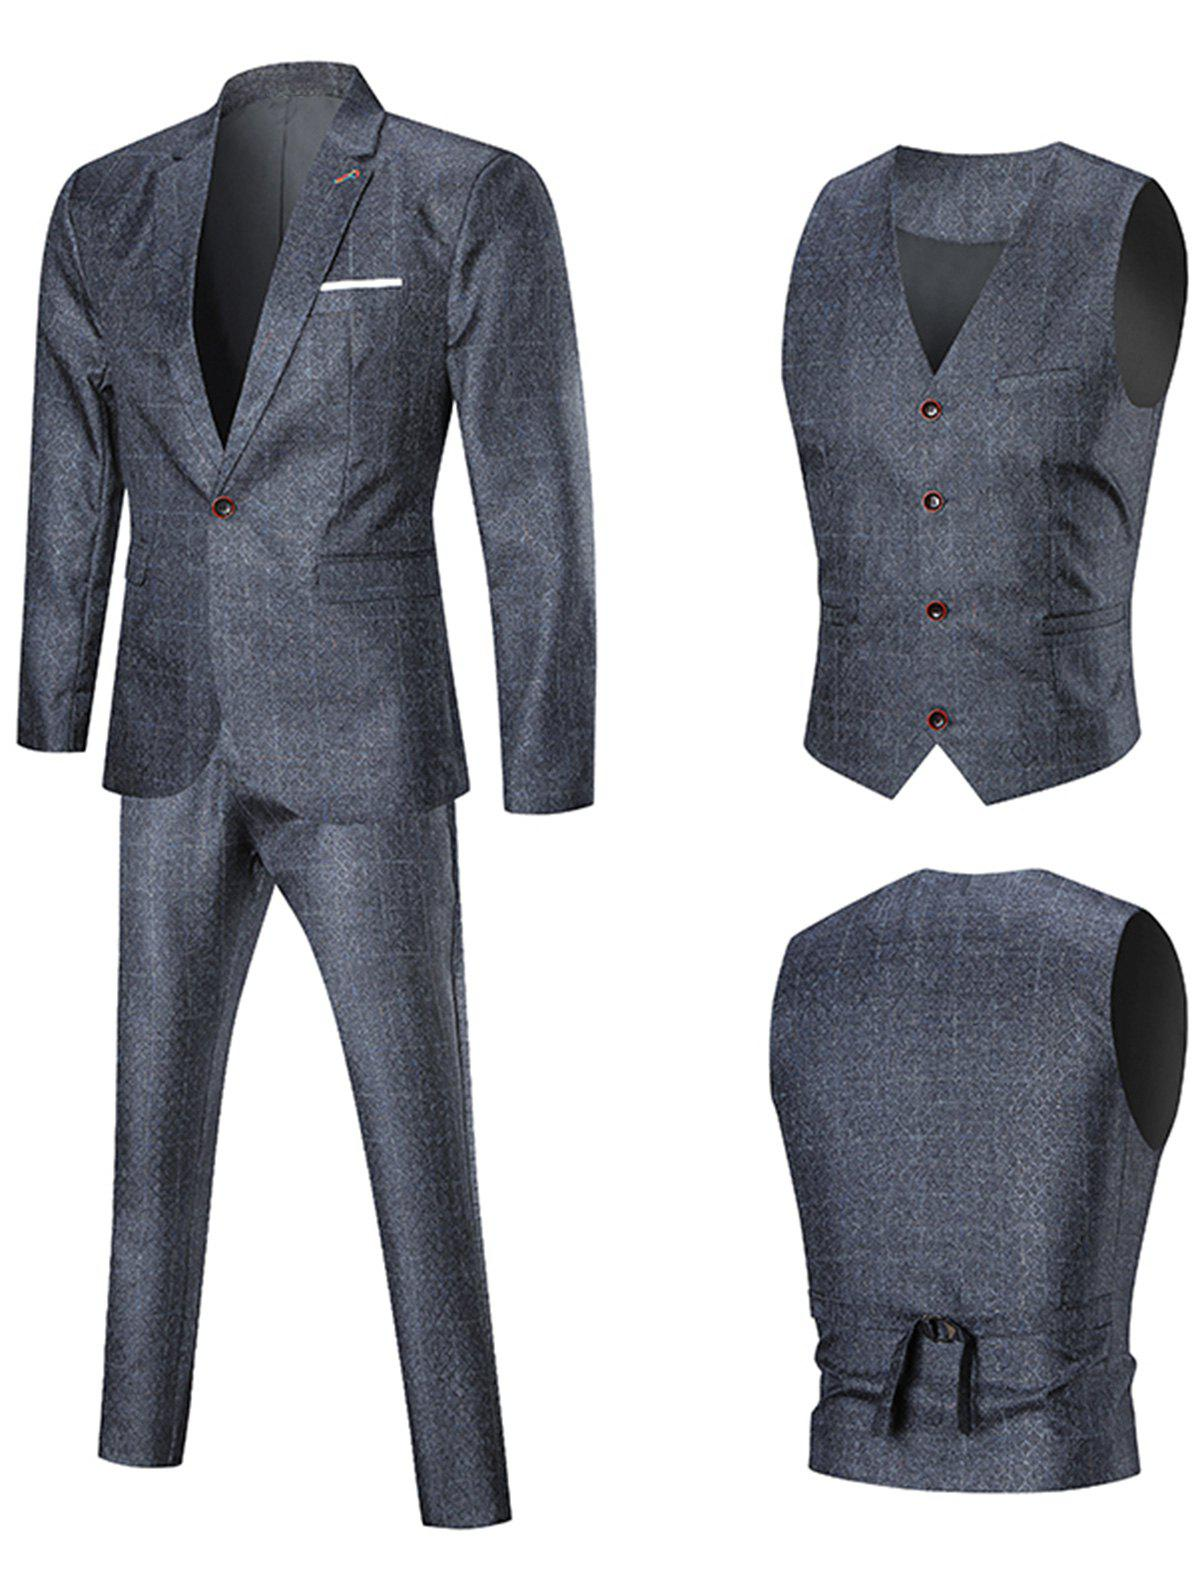 Argyle One Button Three Piece Business Suit - PEARL DARK GREY XL